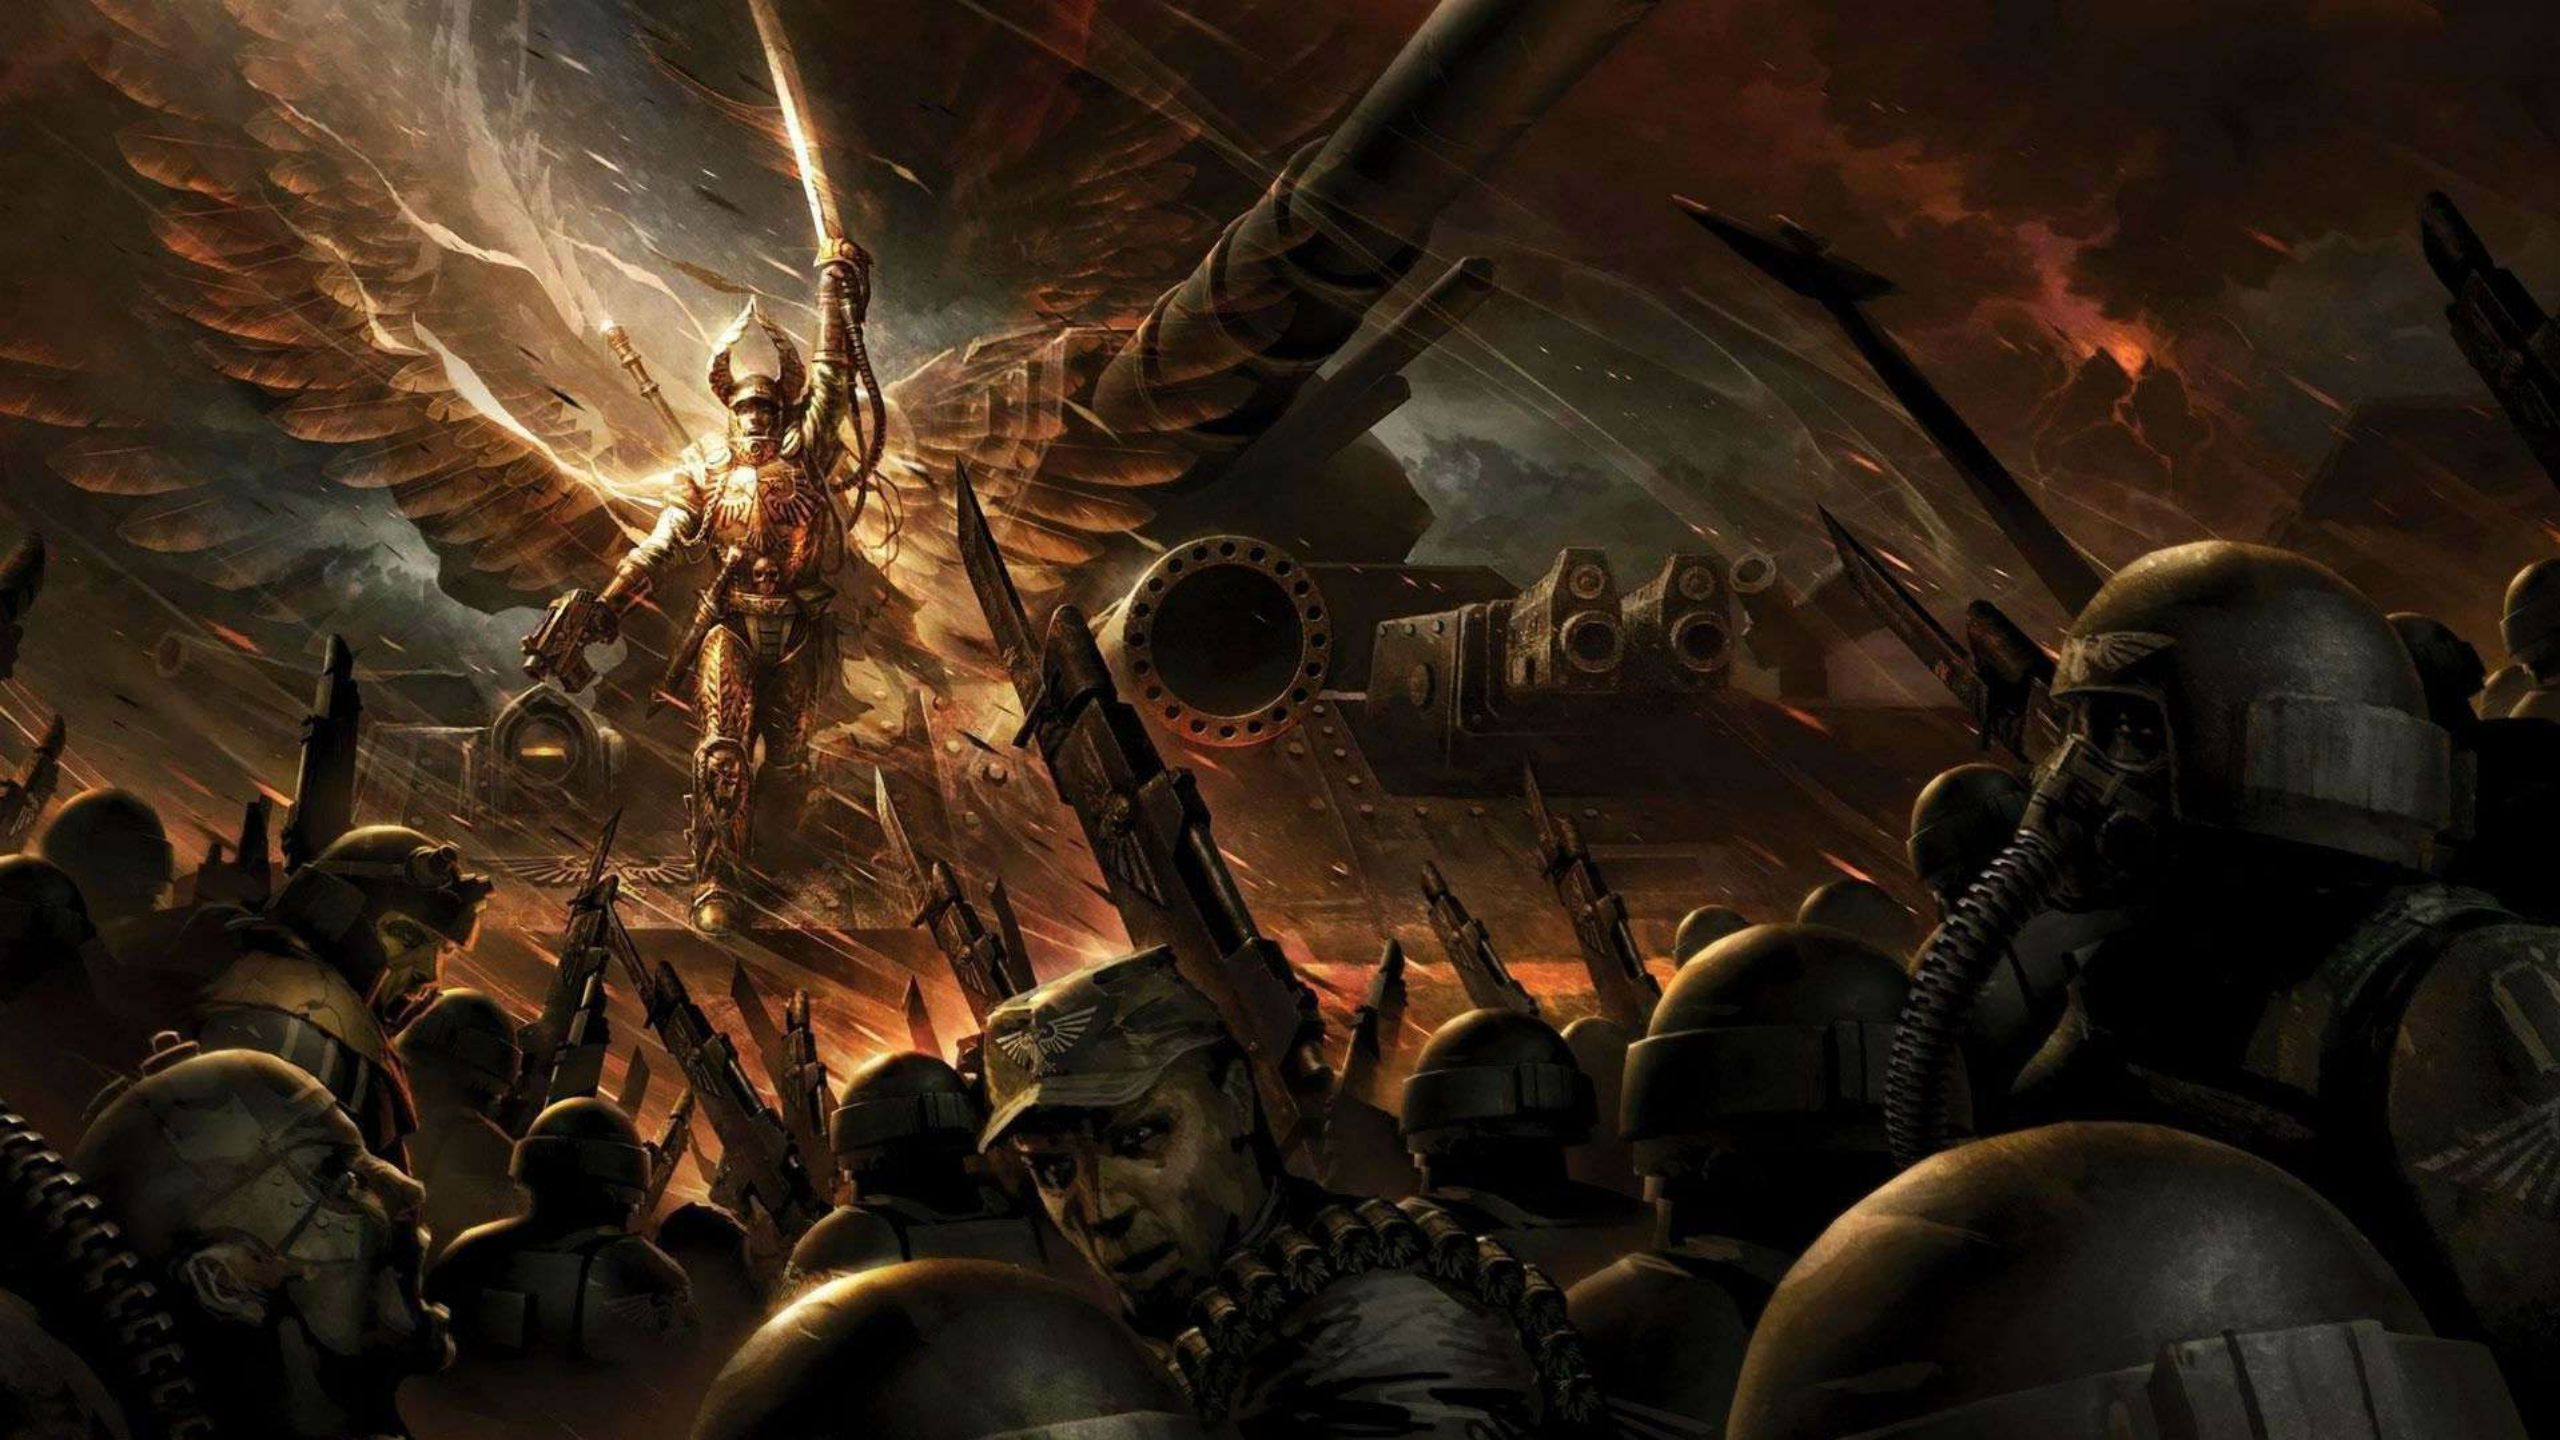 wh40k, imperial guard, hd wallpaper | ✨ wh40k | imperial guard